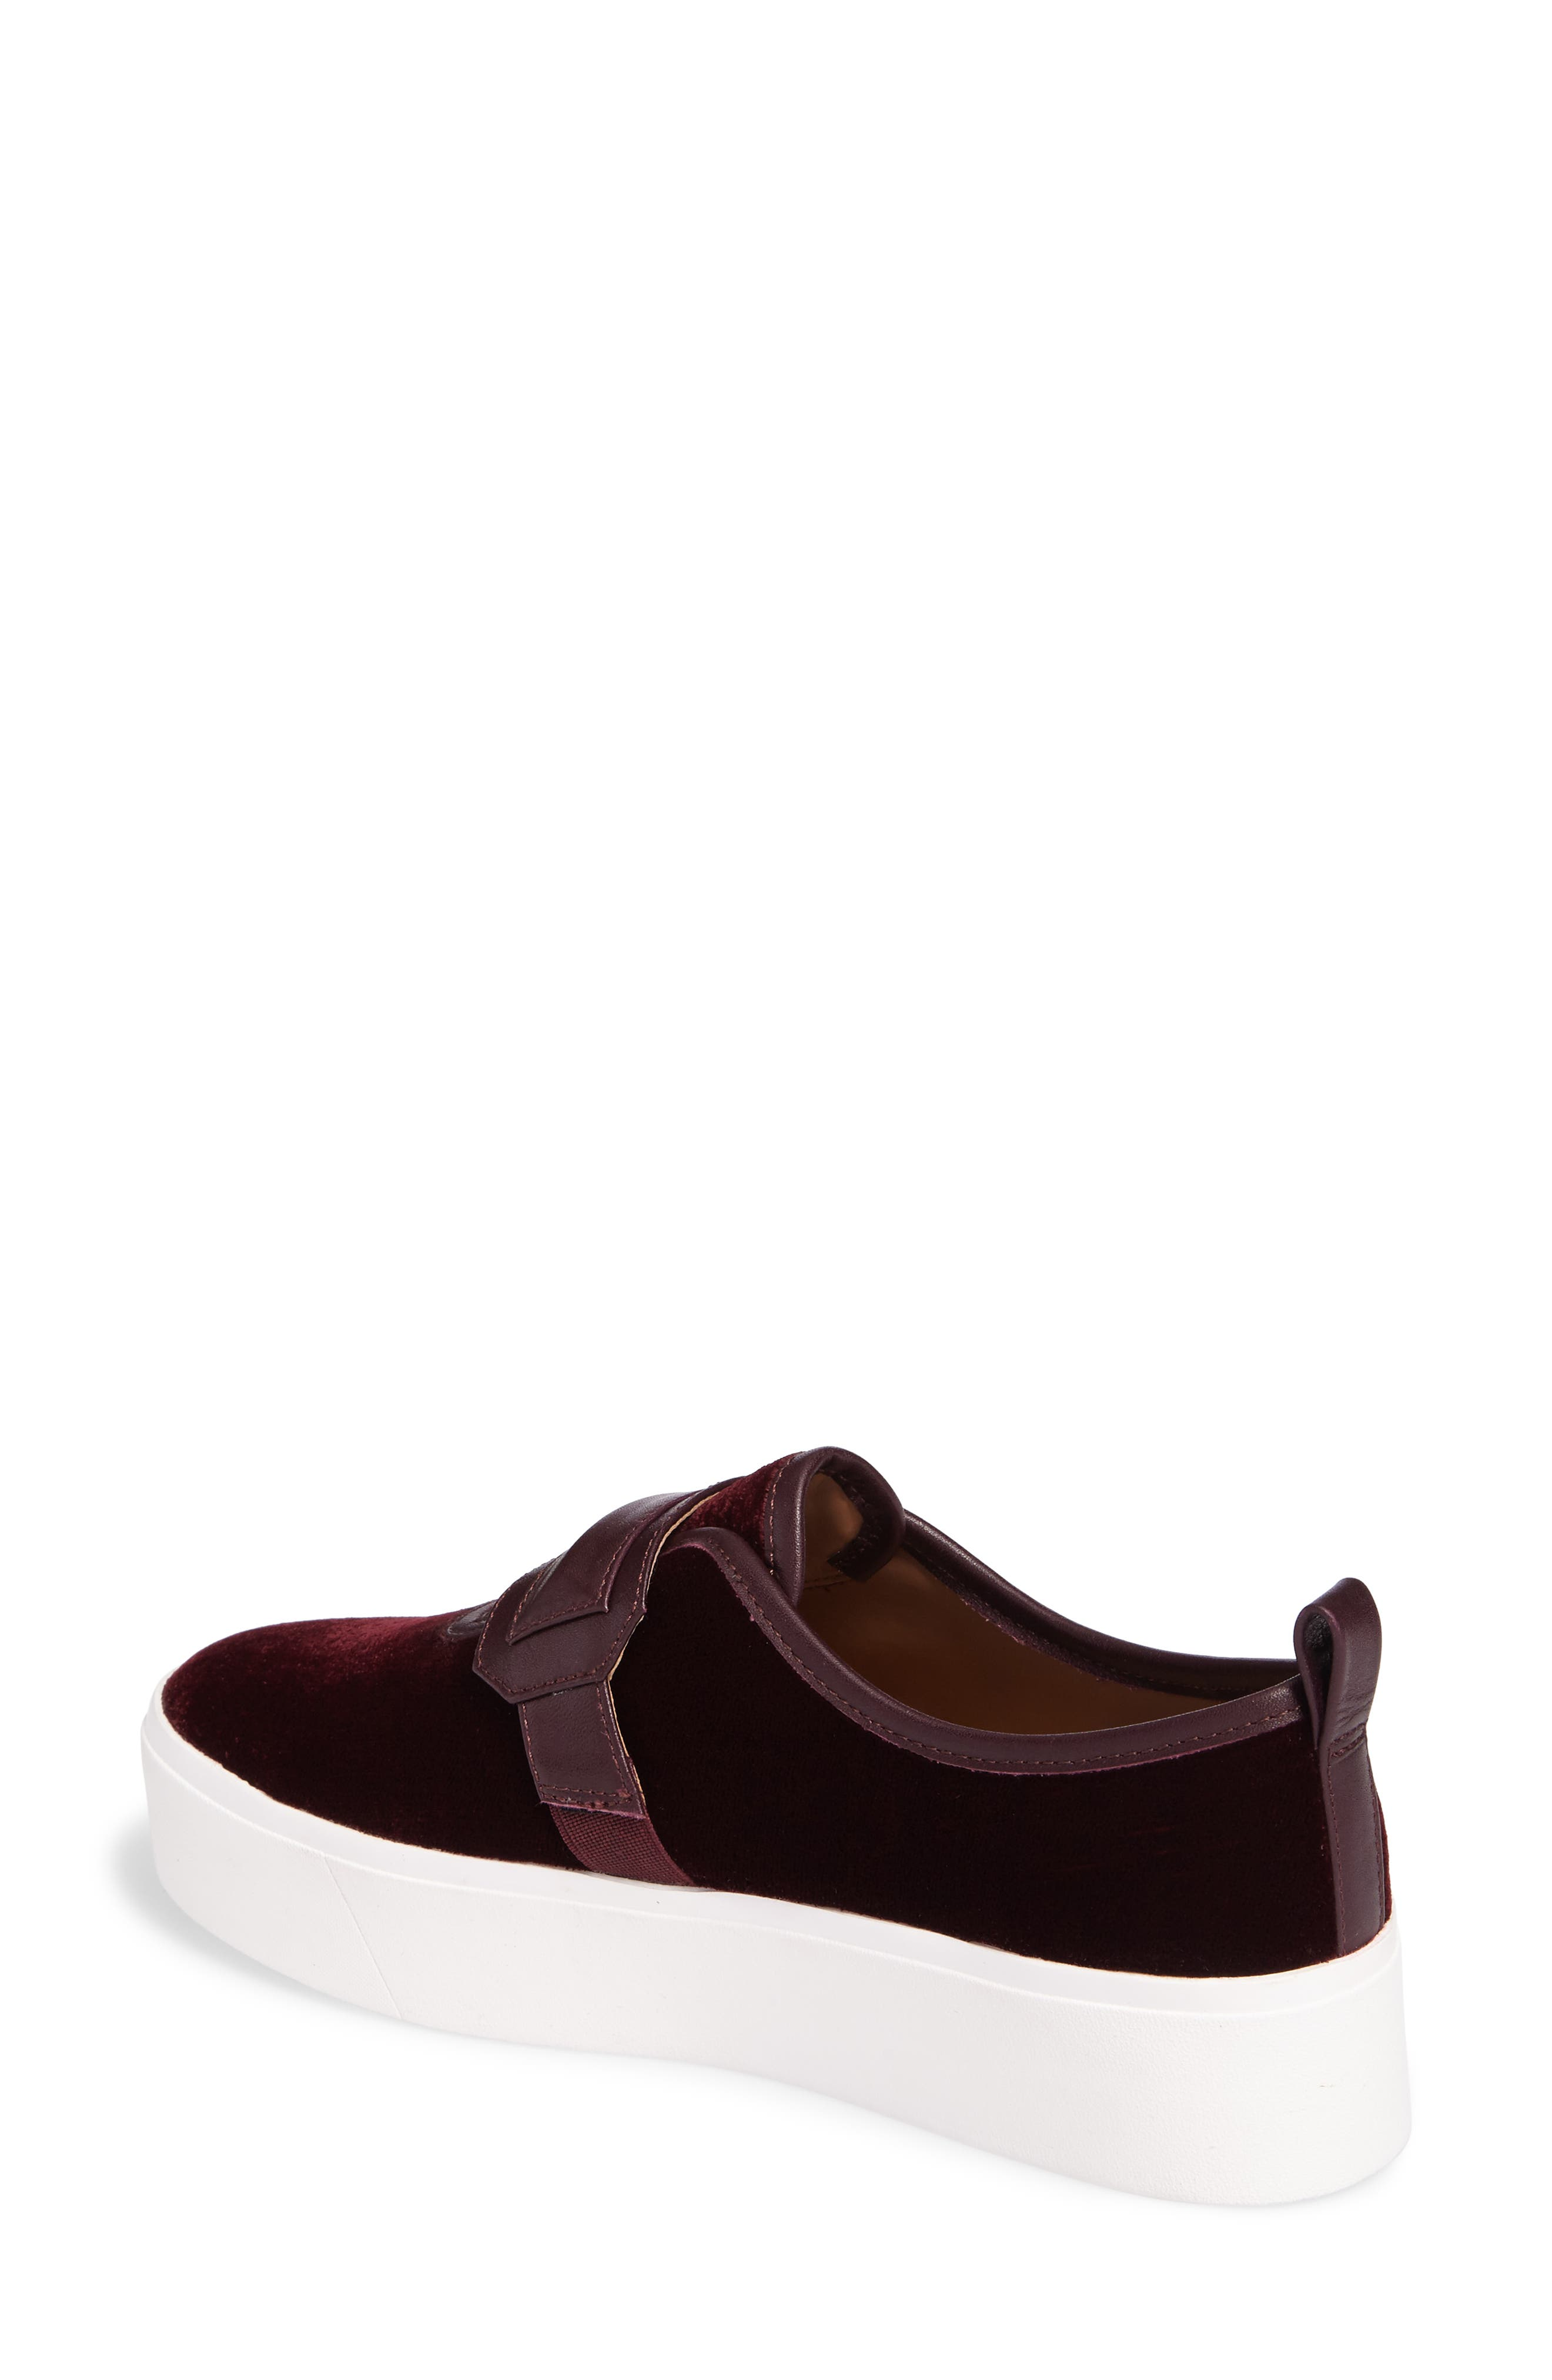 Juno Slip-On Sneaker,                             Alternate thumbnail 4, color,